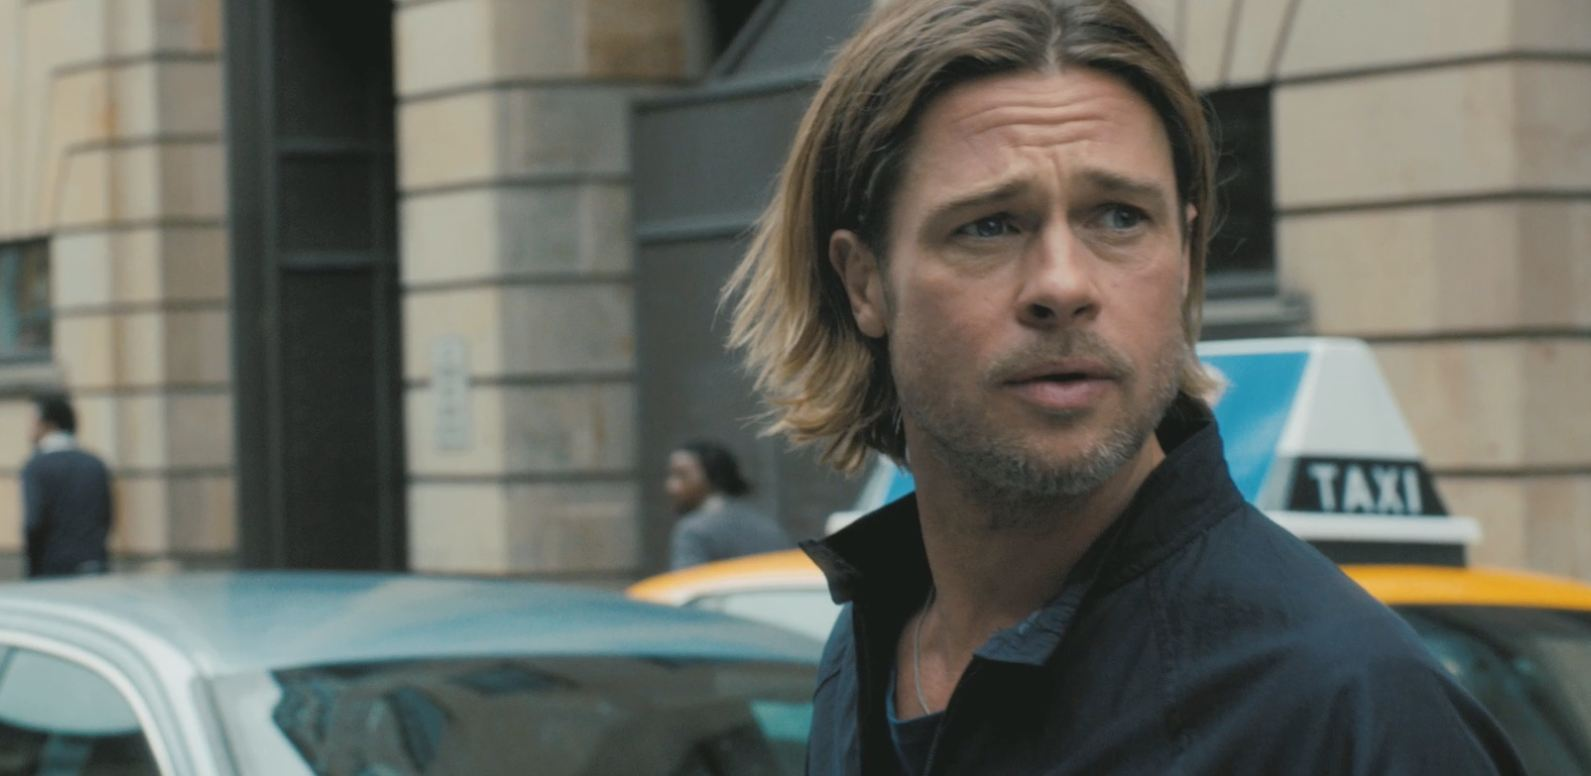 """6. World War Z (2013): A short-term solution was found to keep non-infected people safe, but the main character says, """"We're all still screwed."""" Therefore, we all need a sequel to know what happens next."""